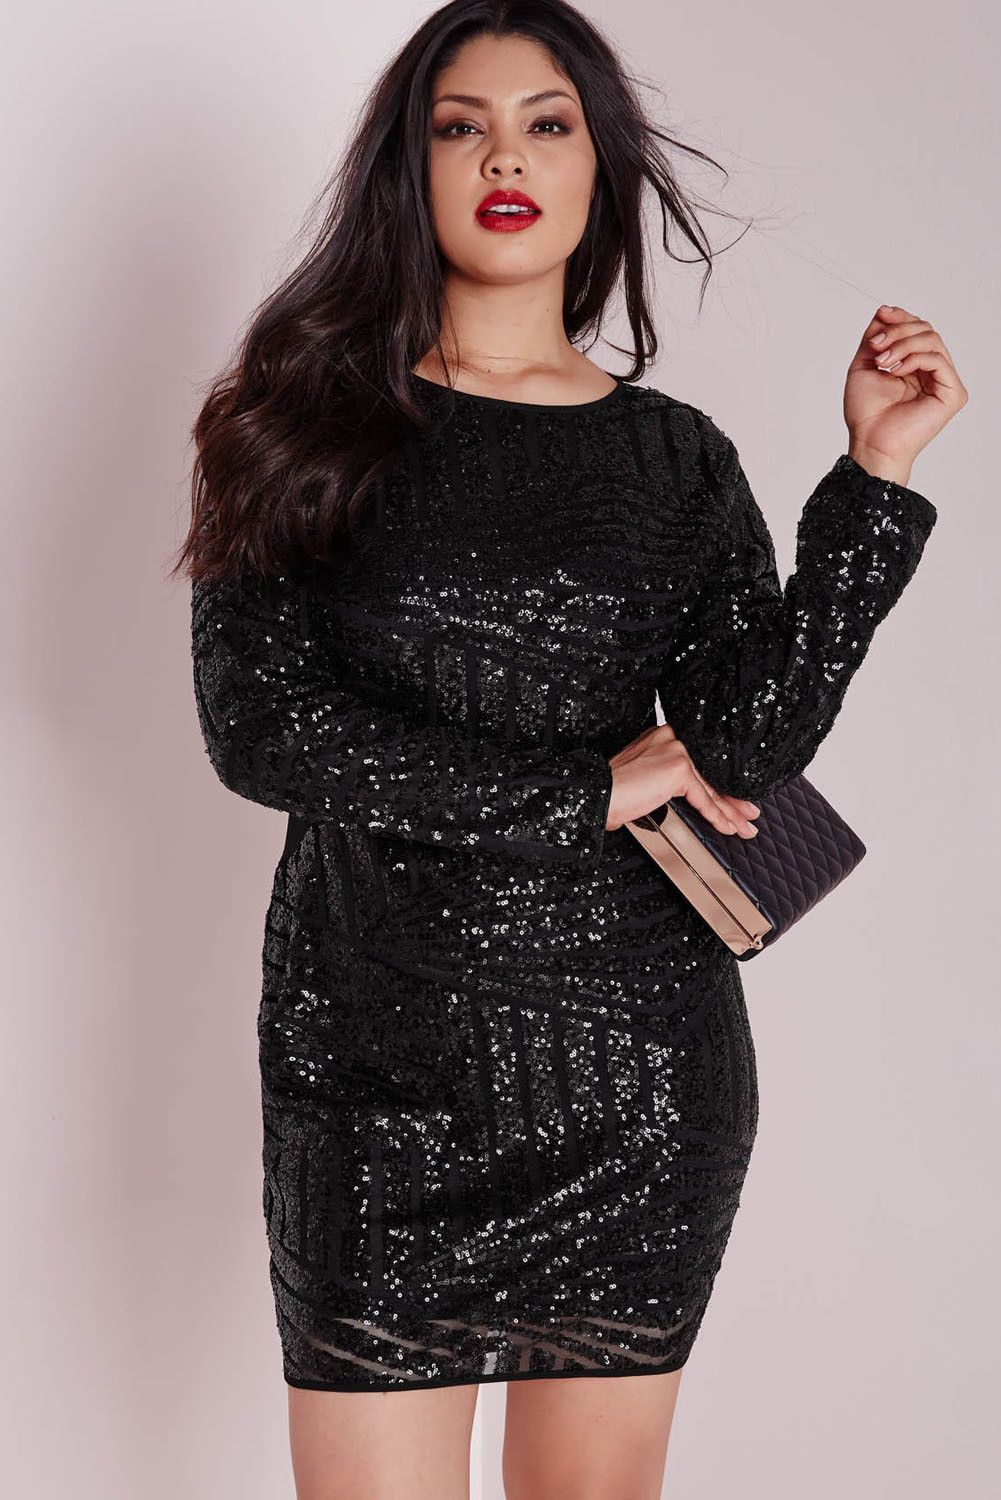 Plus Size Black Sequin Dress | Styles <3 in 2019 | Fashion ...